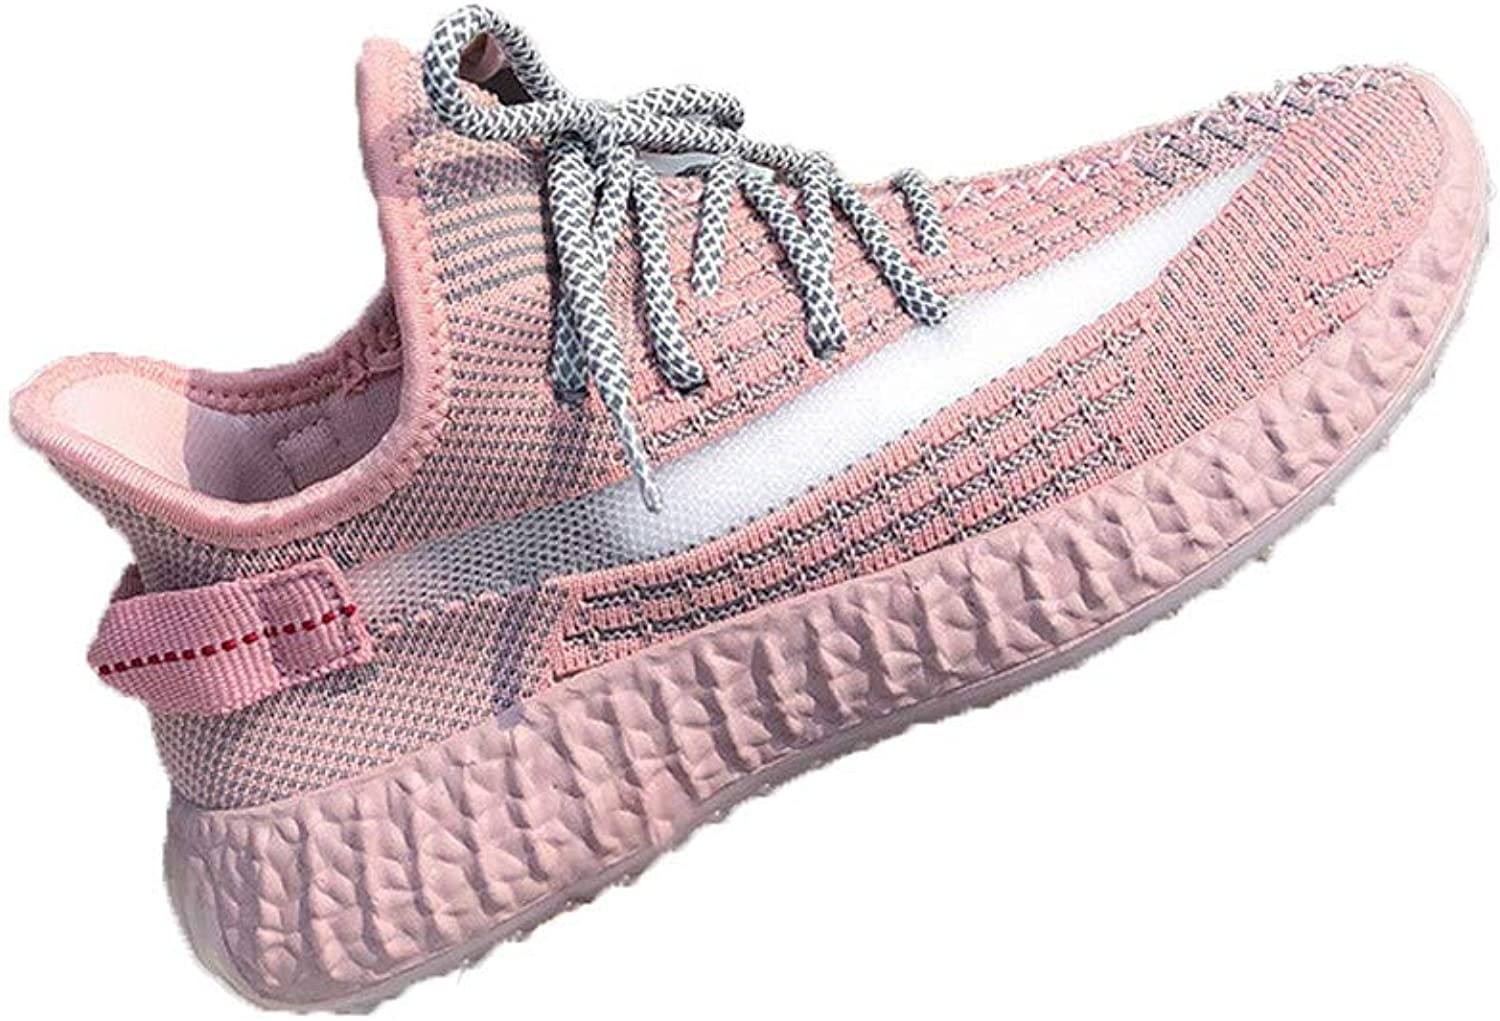 Pophight Women's Casual Breathable Athletic Running Sport shoes Walking Fashion Sneaker shoes